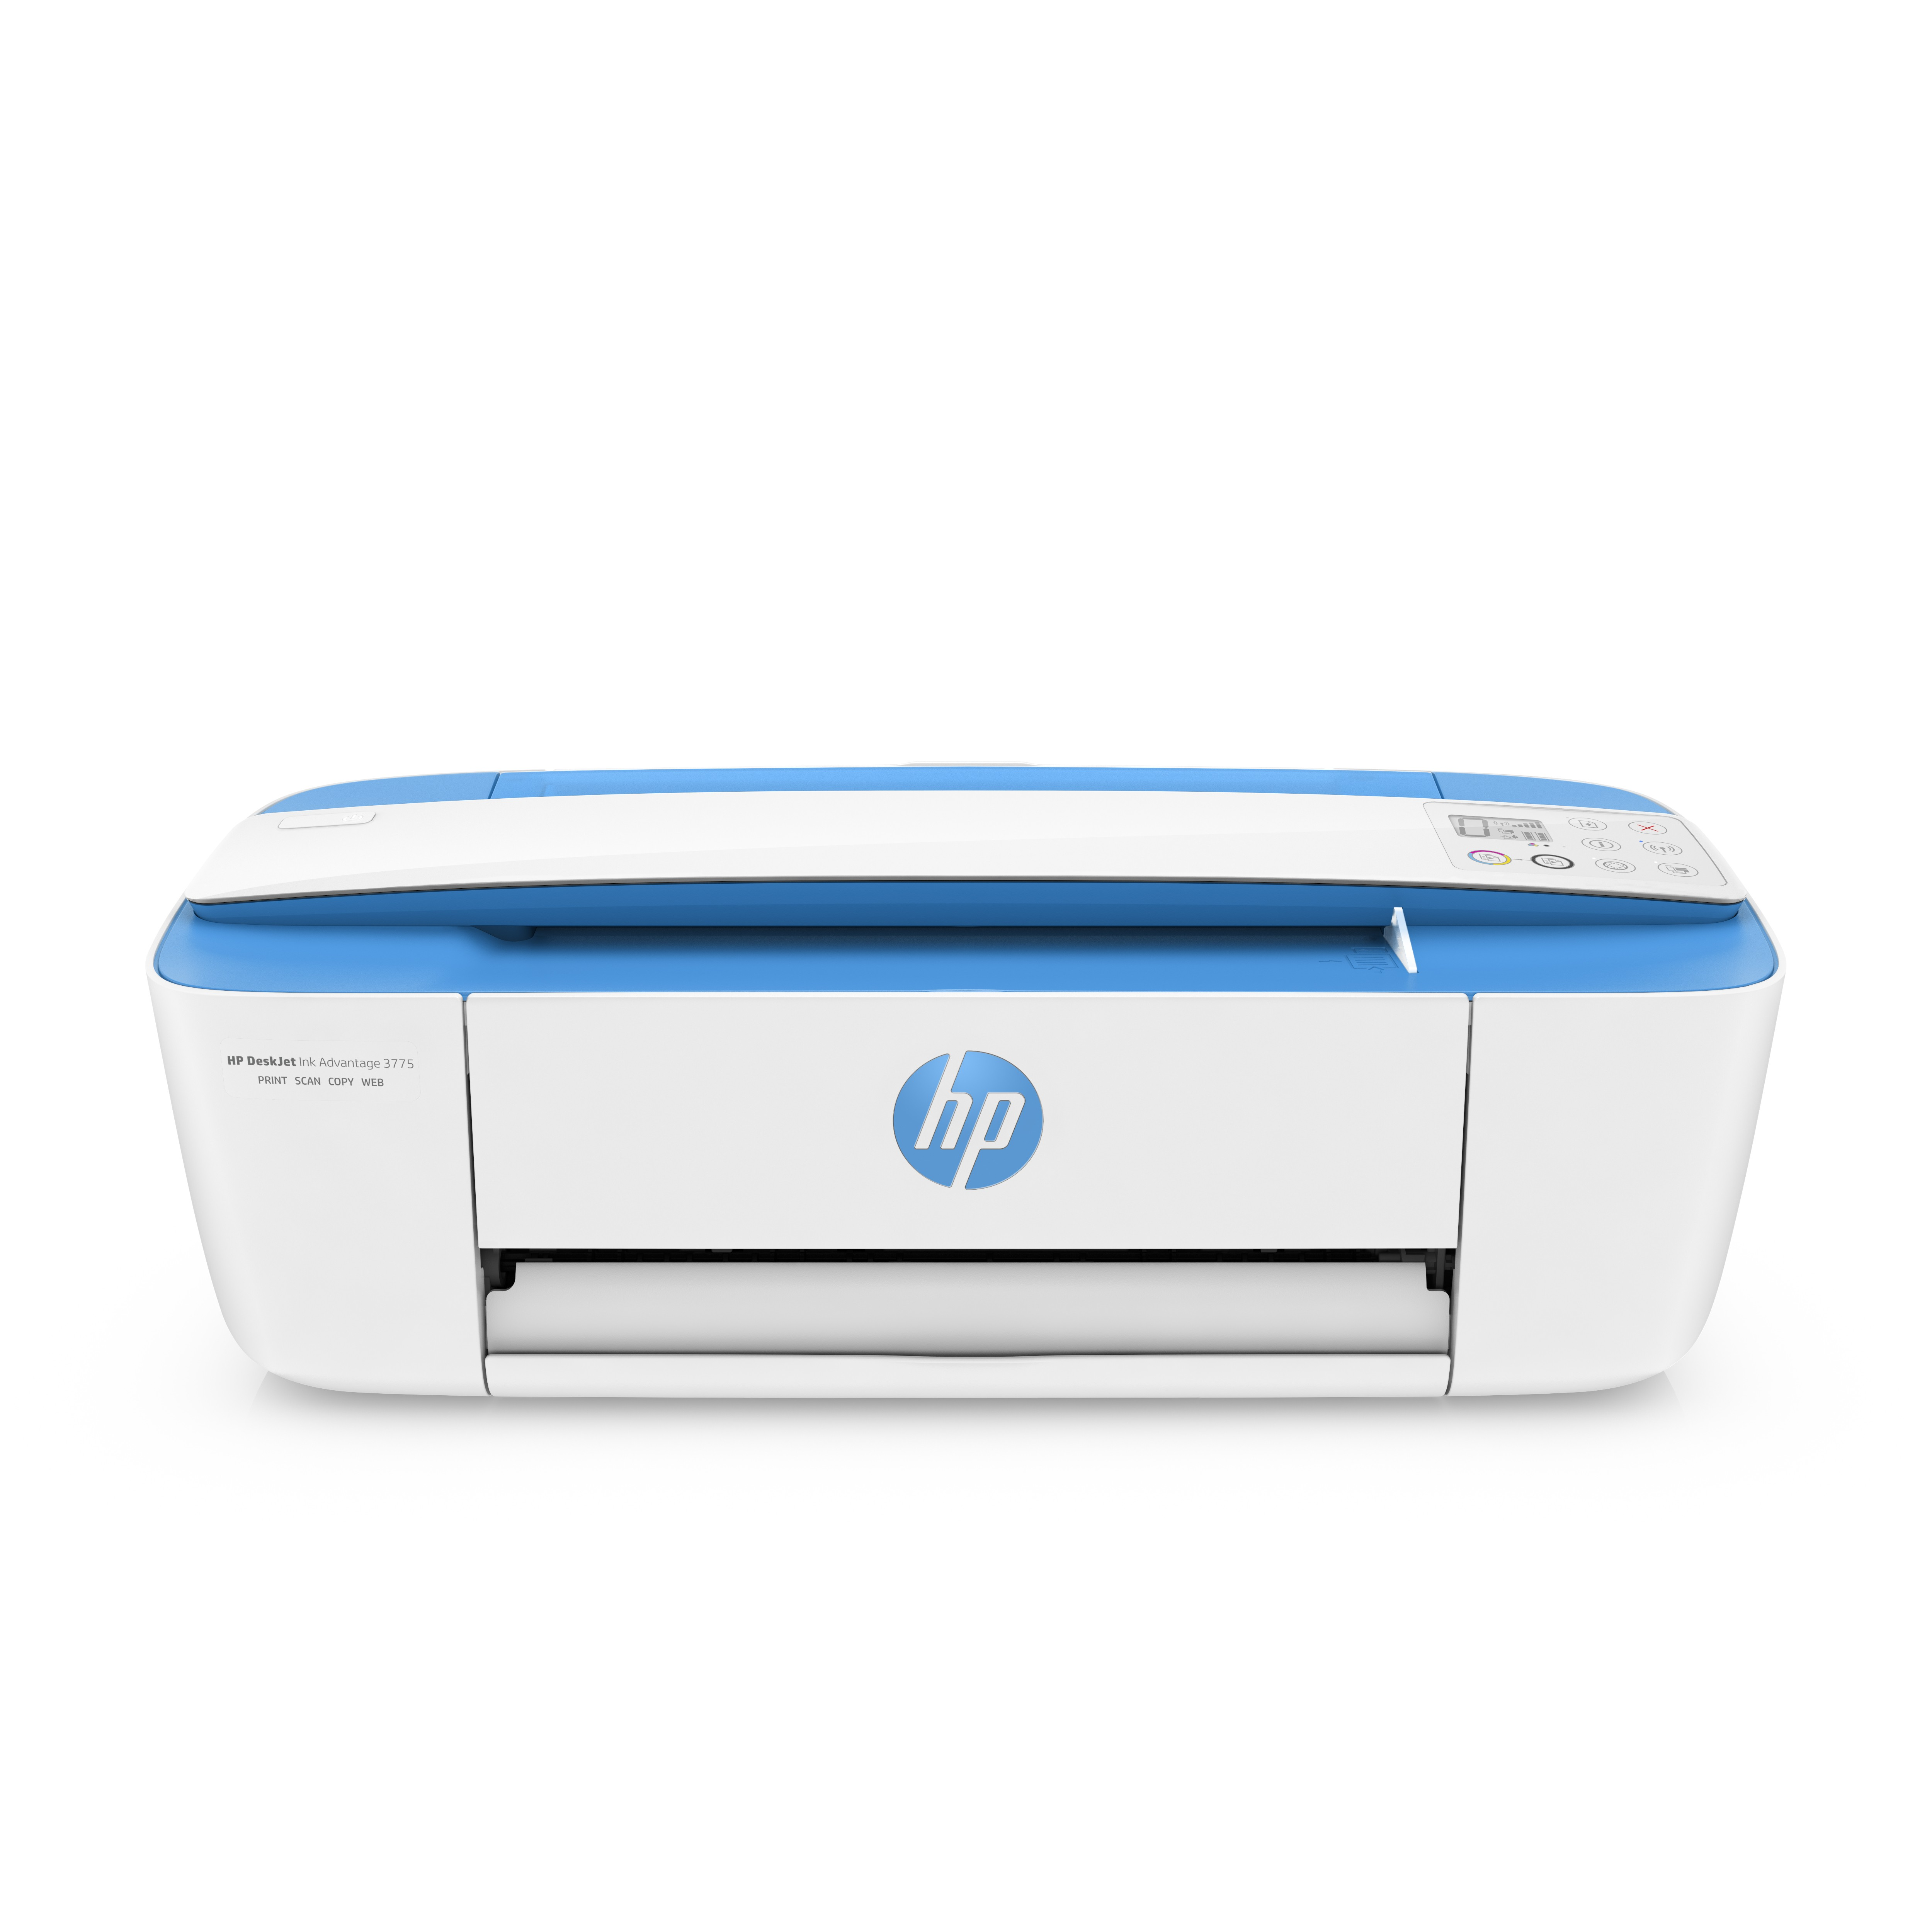 Printer Driver For HP PSC 1350 Download